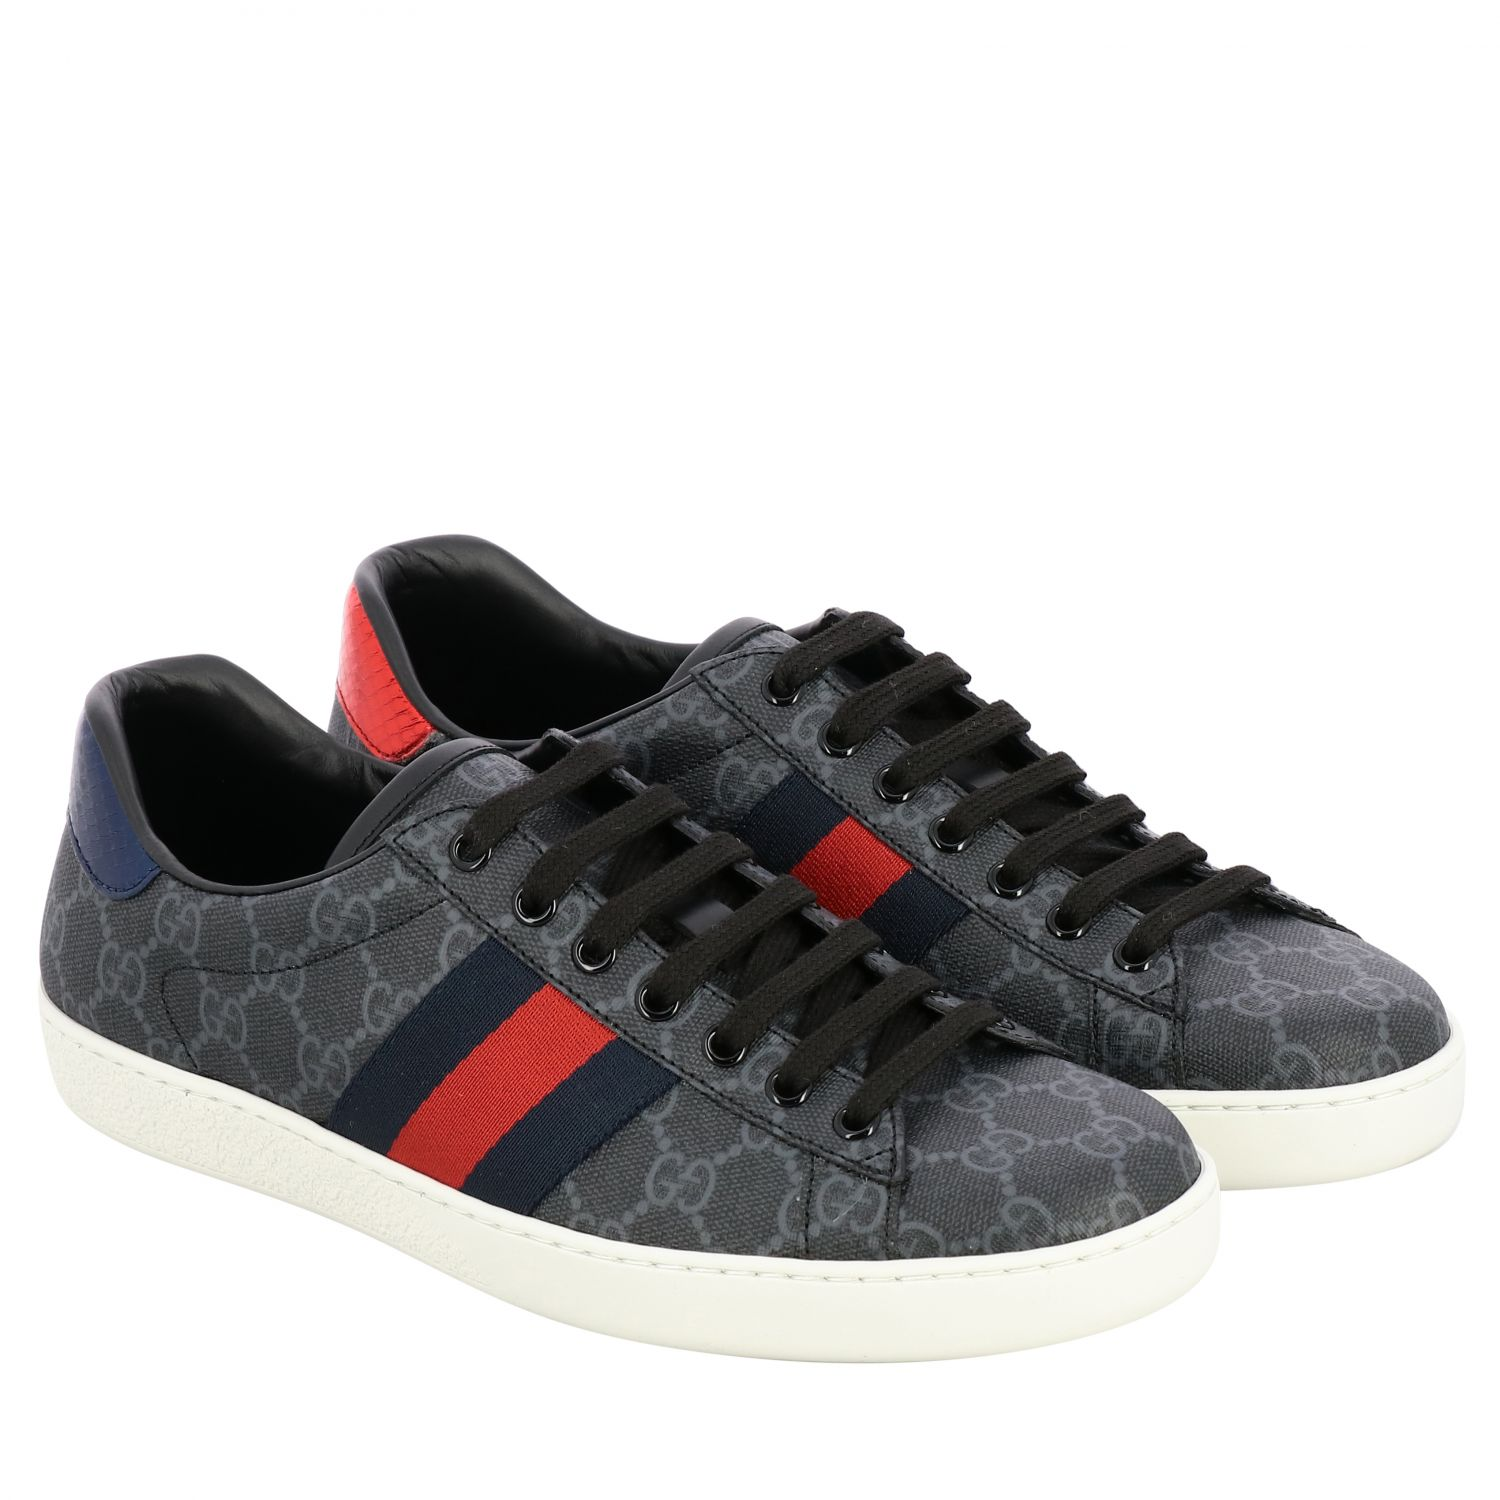 Gucci New Ace sneakers in GG Supreme